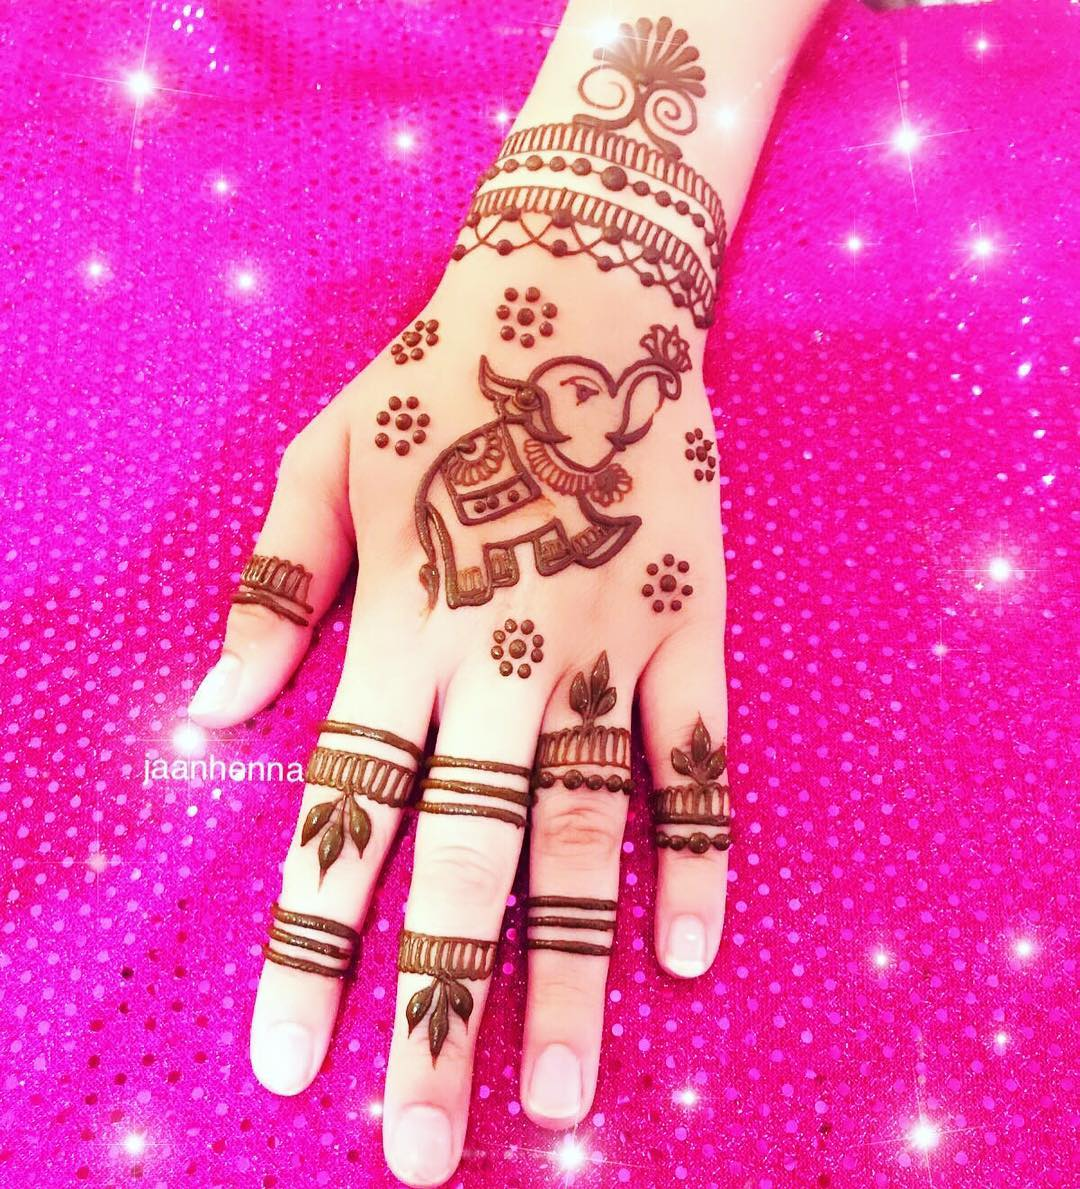 New Mehndi Design Simple 2018, Latest 2018 Mehendi Design Photos, Simple Mehndi Designs For Beginners, Mehndi Designs Easy And Simple, Festival Mehendi Designs